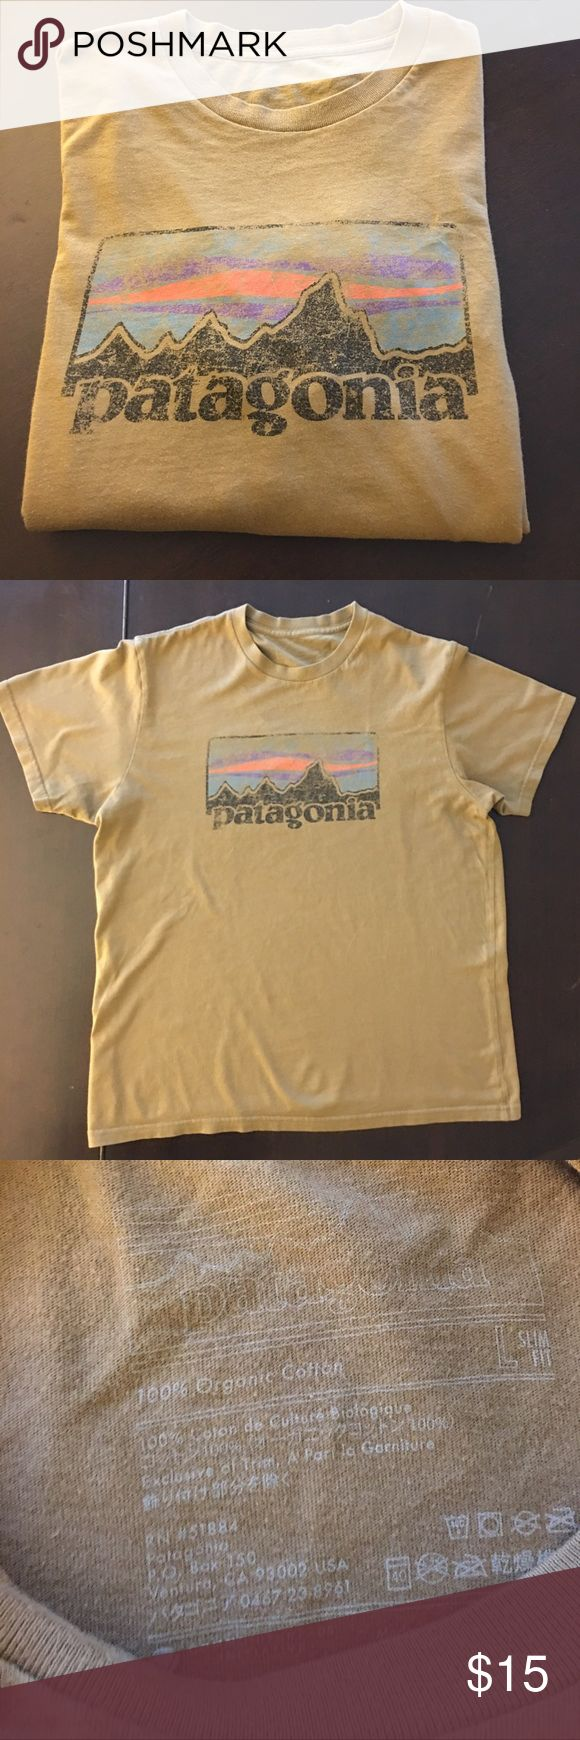 Patagonia TShirt Great condition:) organic cotton no tears or stains Patagonia Shirts Tees - Short Sleeve